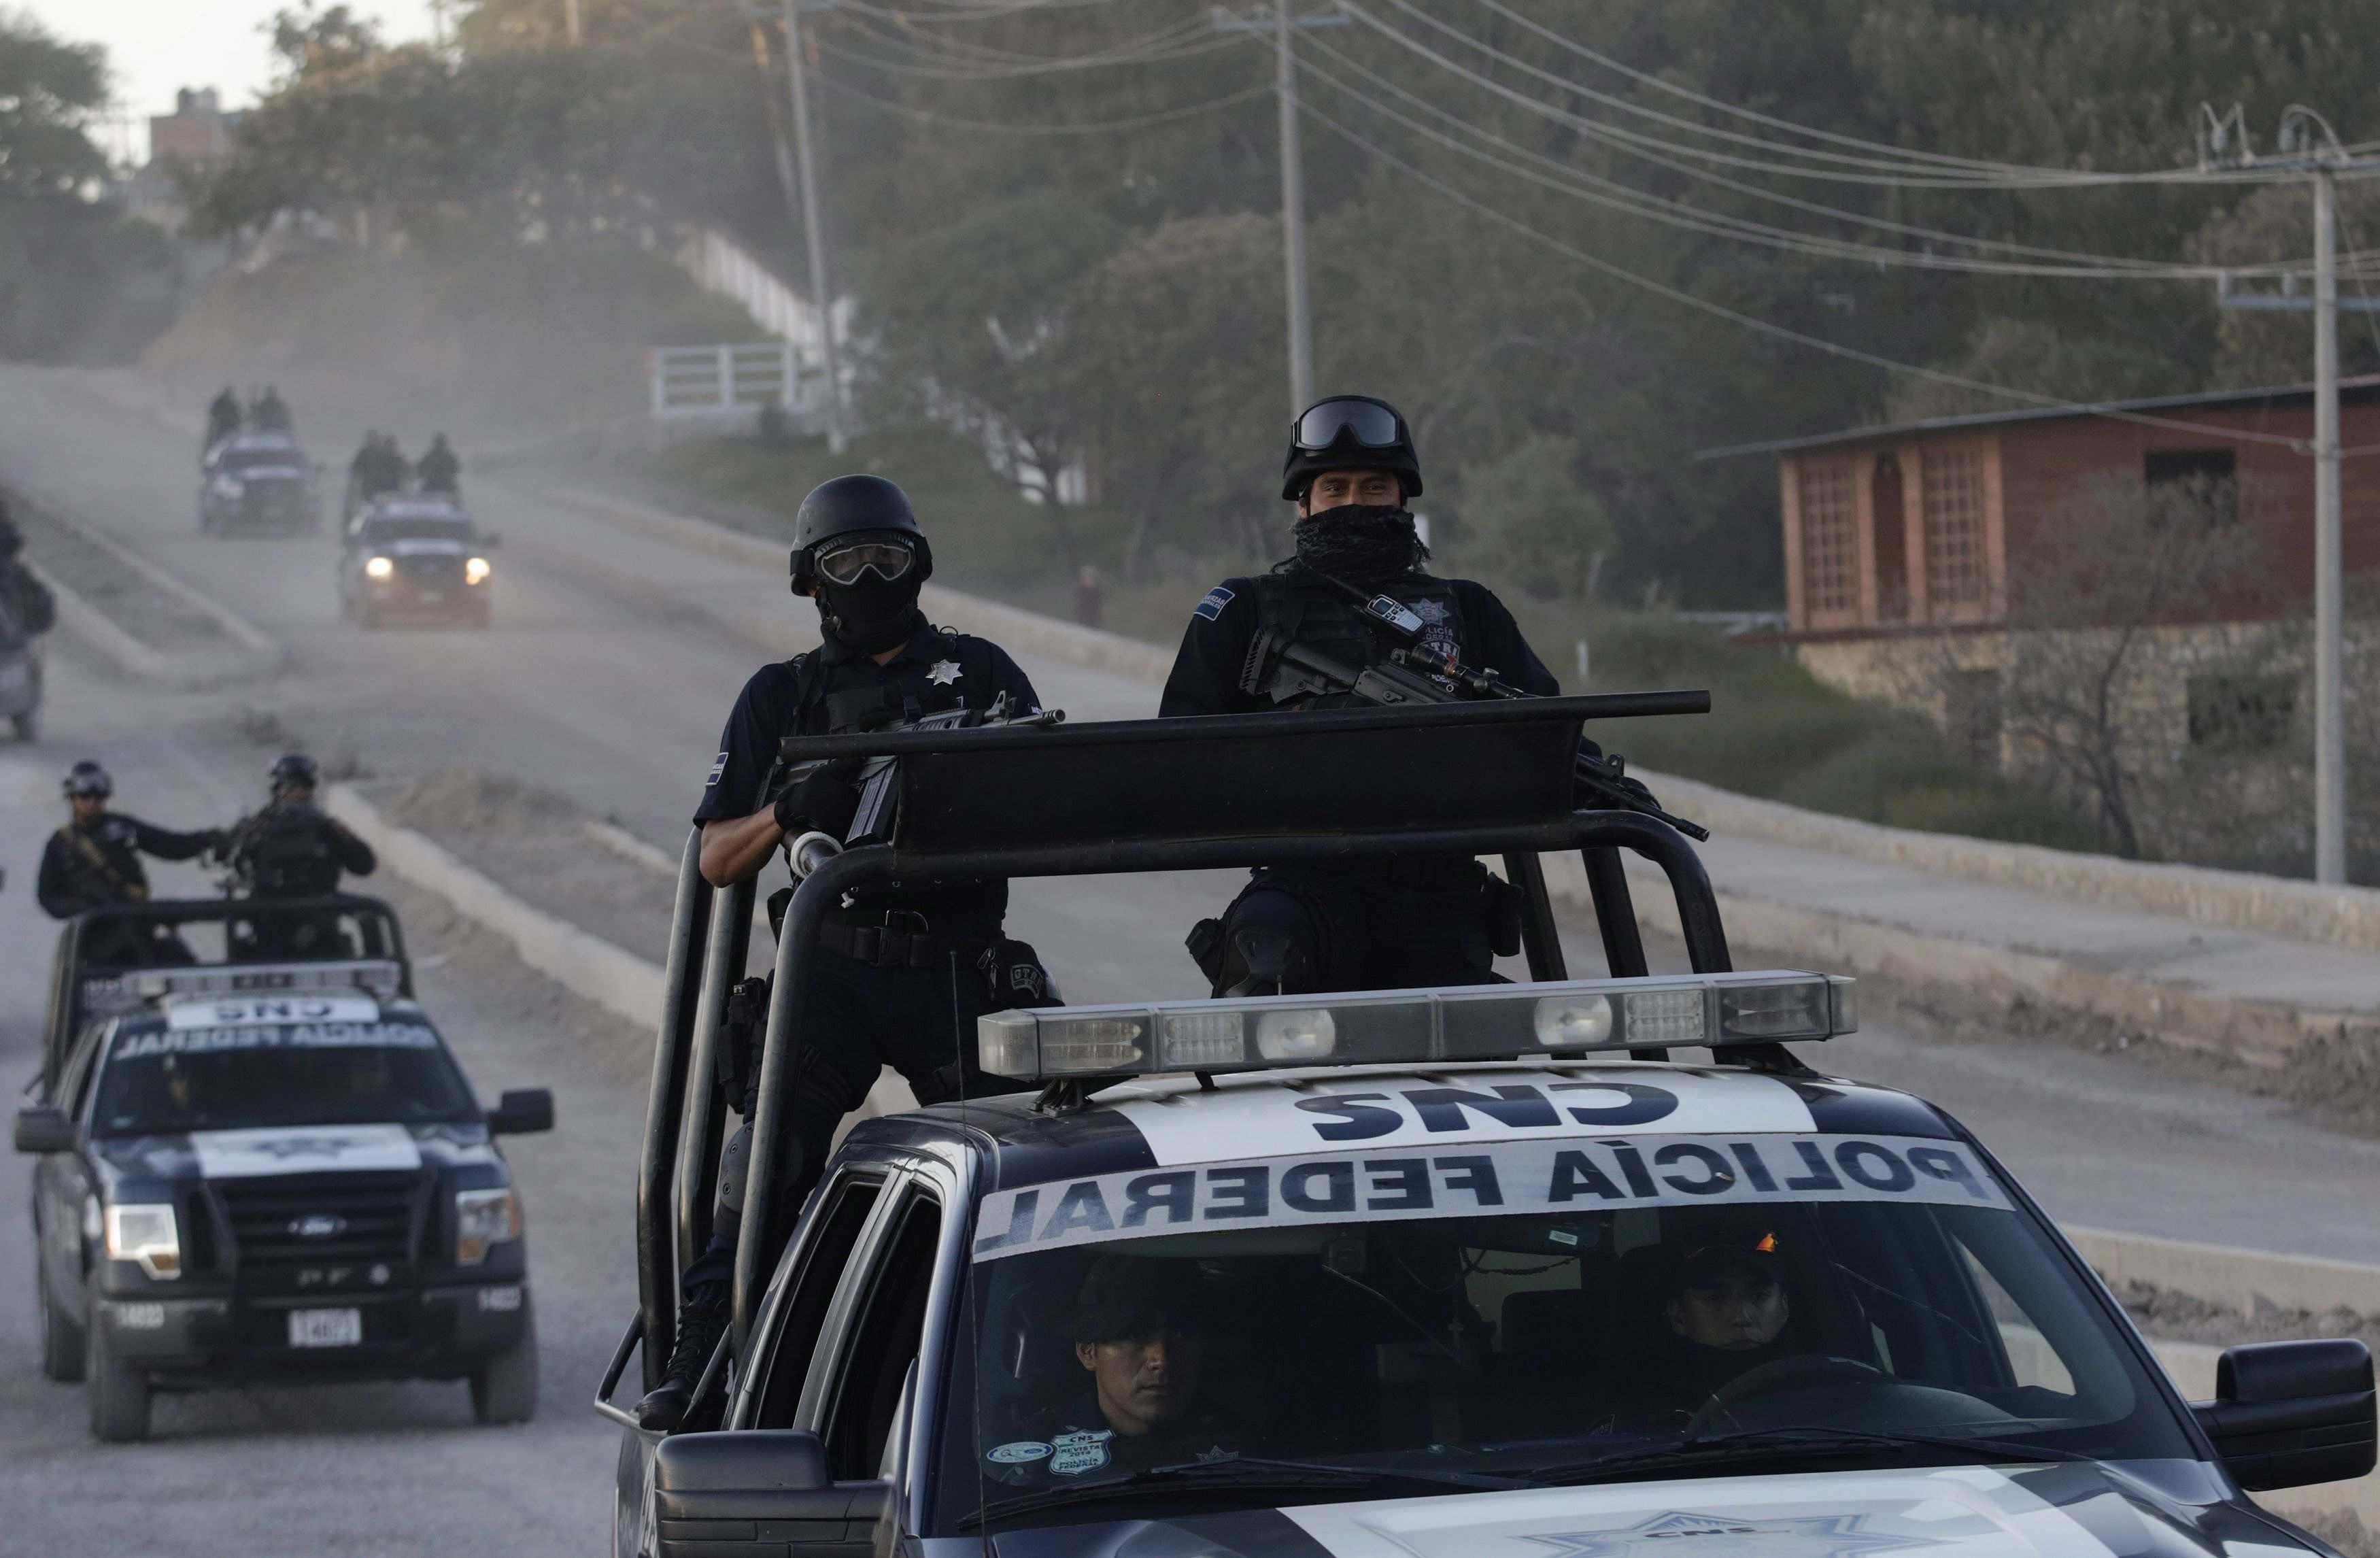 Federal police vehicles patrol Teloloapan, outside Iguala, Guerrero